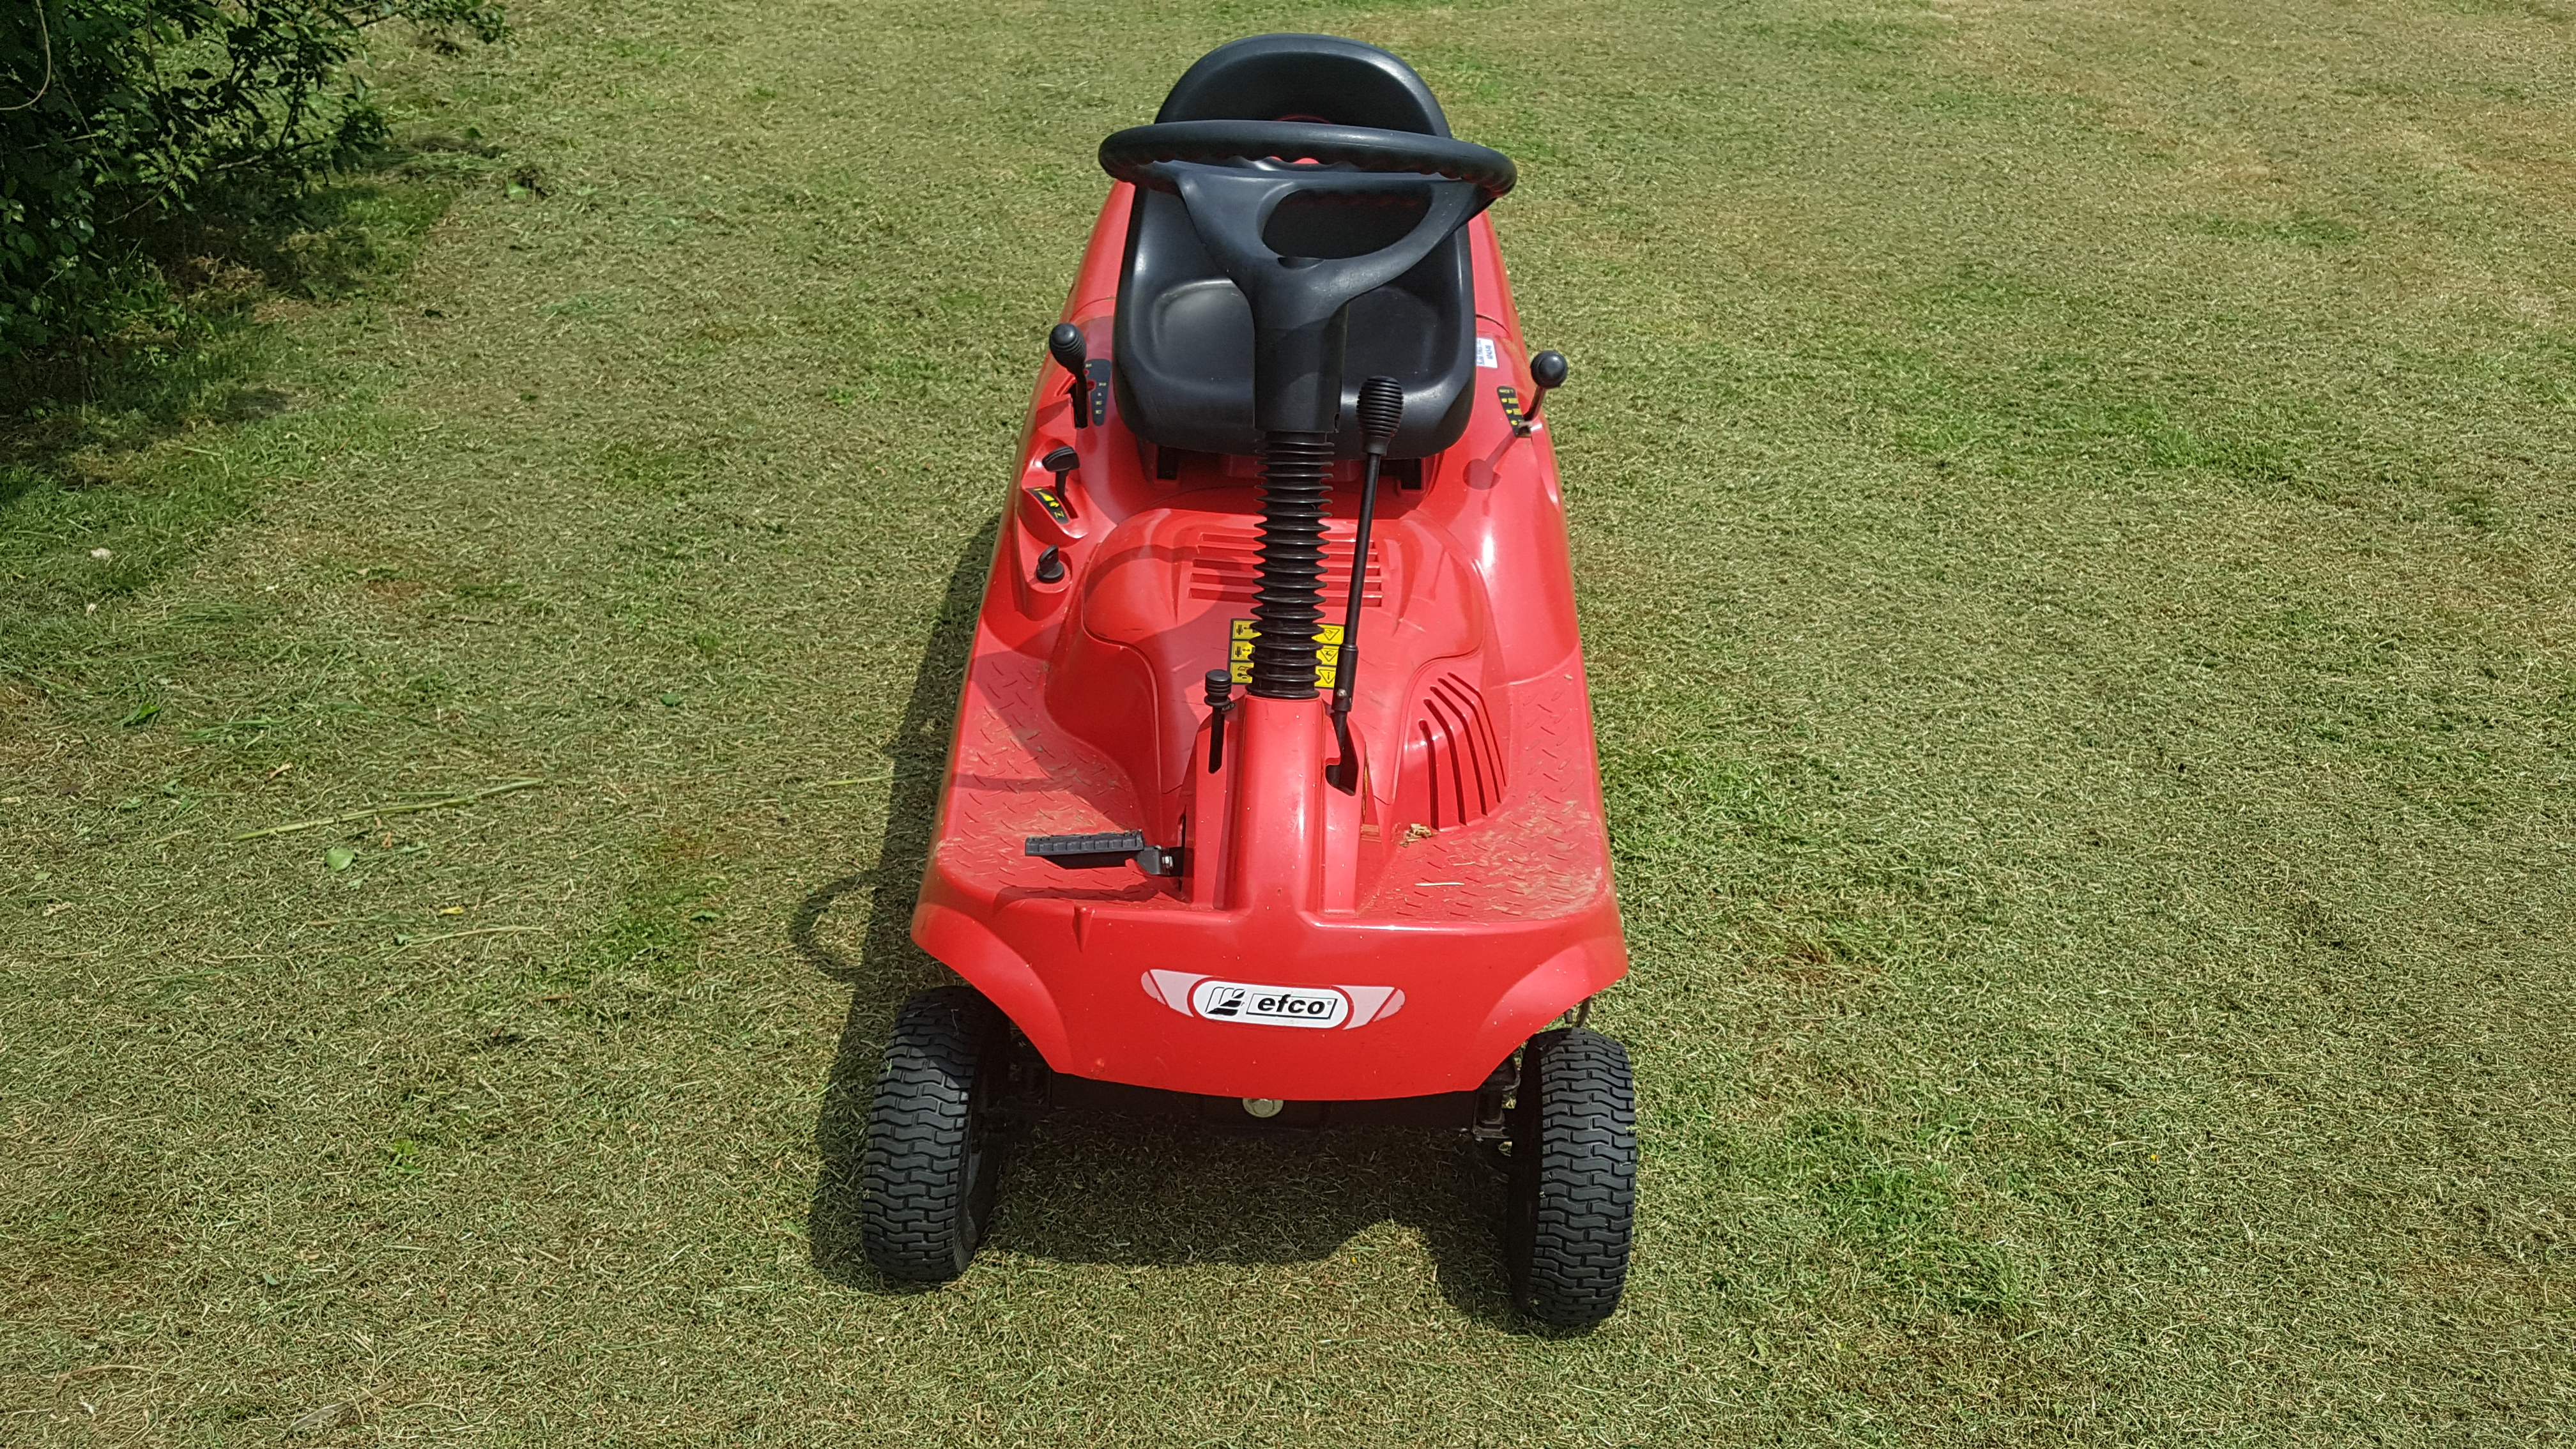 efco-ef63c-small-ride-on-mower